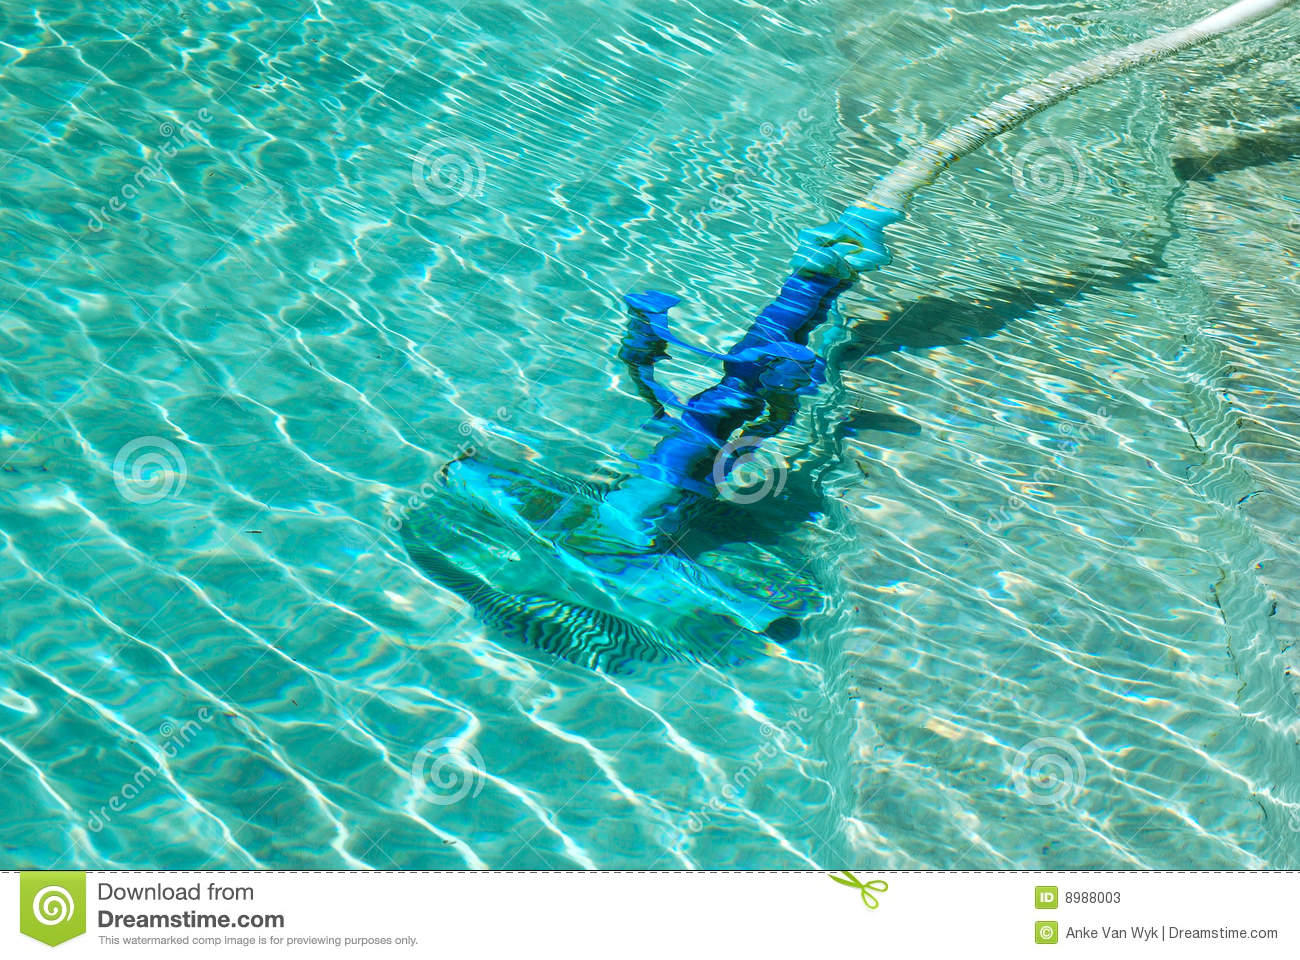 Cleaning swimming pool stock photos image 8988003 - How to clean a dirty swimming pool ...